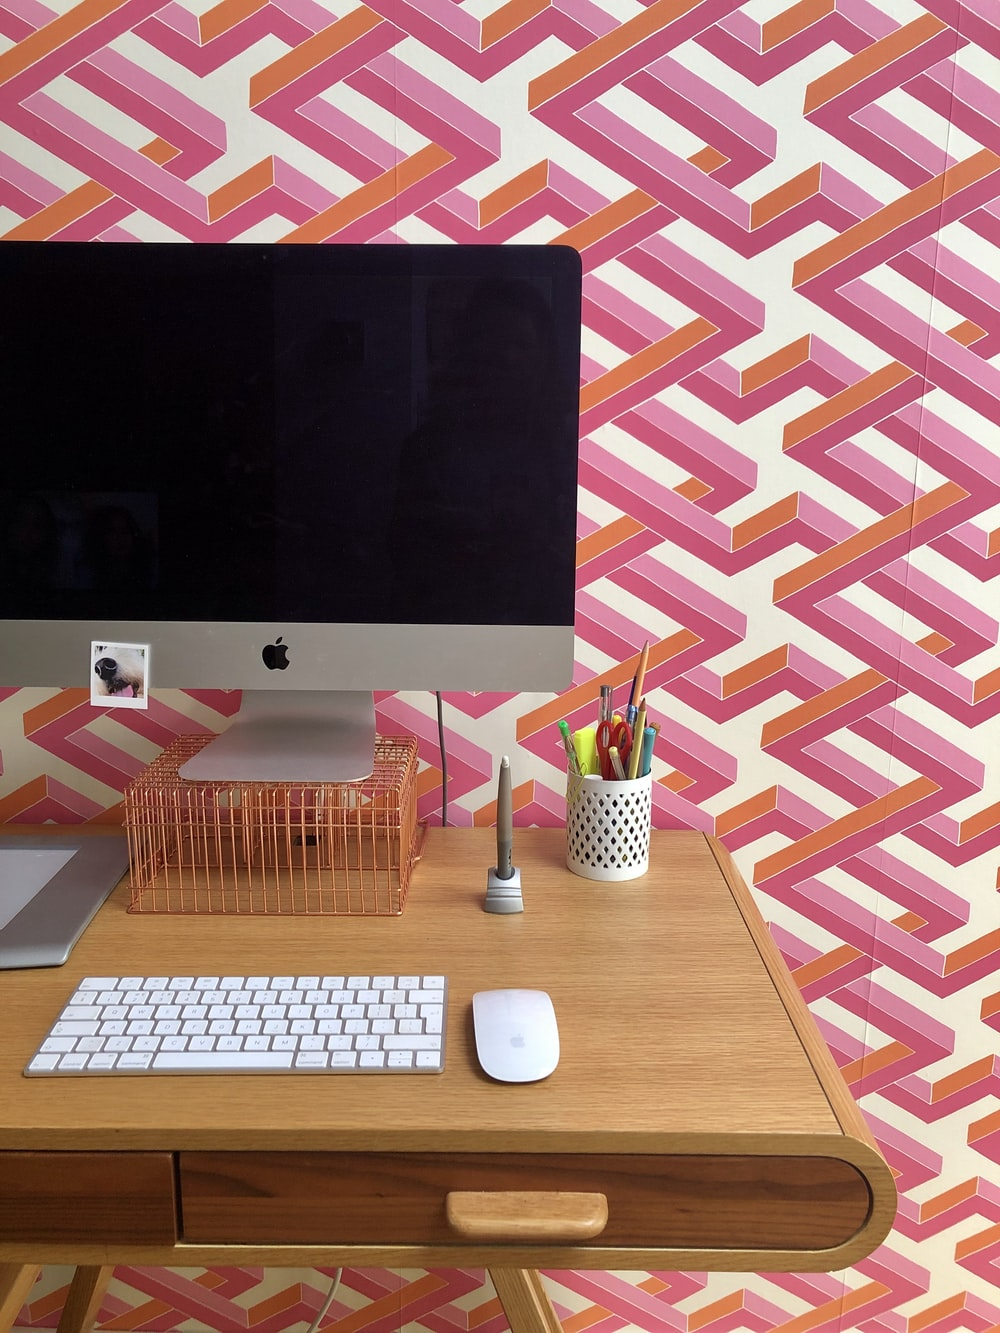 silver imac on brown wooden table